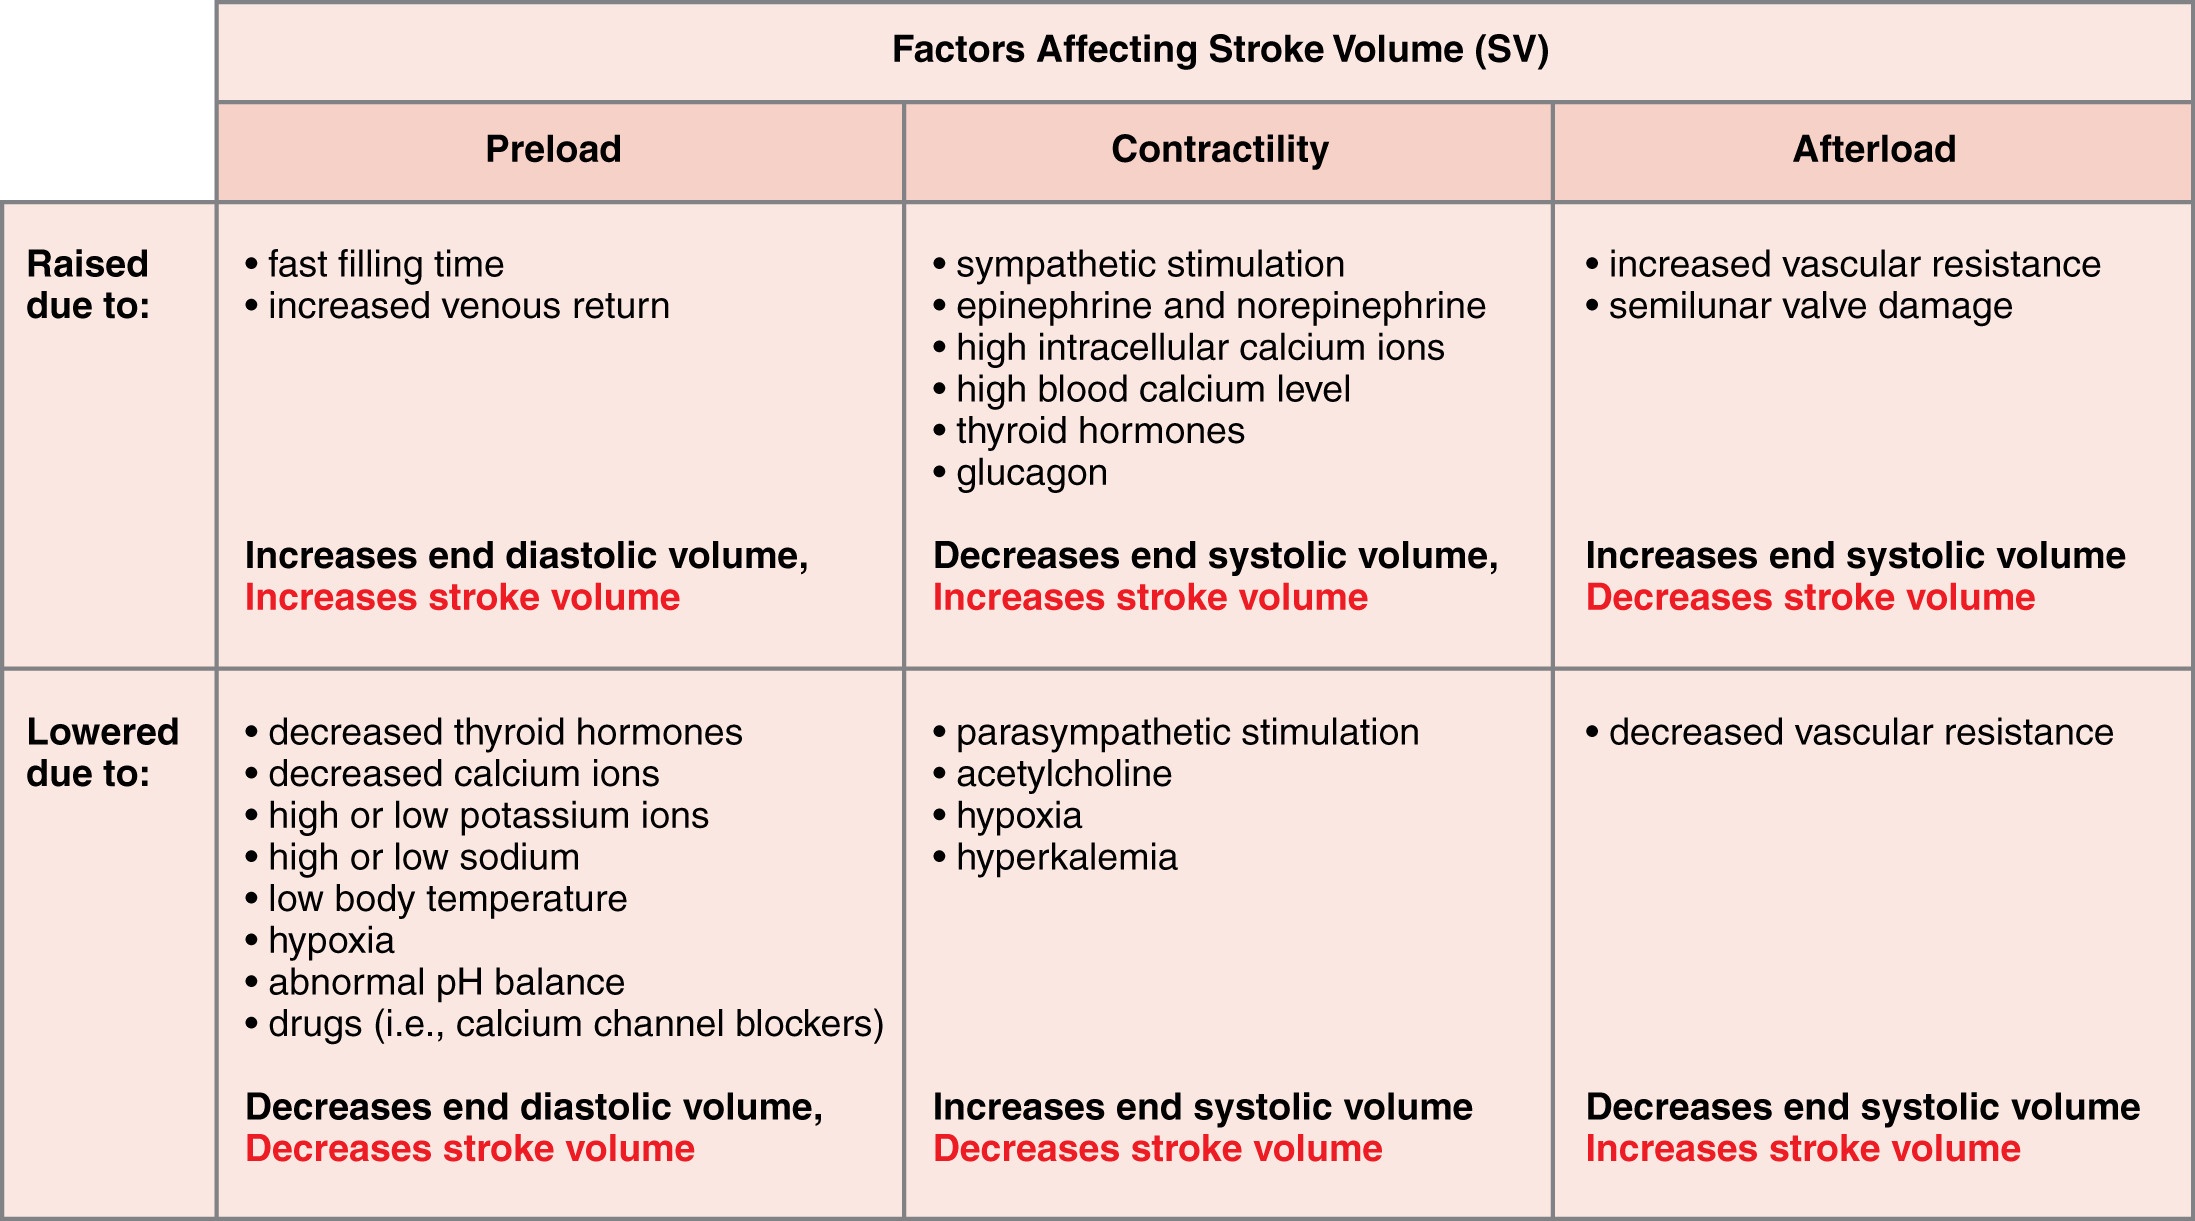 This table describes major factors influencing stroke volume. Preload may be raised due to fast filling time or increased venous return. These factors increase end diastolic volume and increase stroke volume. Preload may be lowered due to decreased thyroid hormones, decreased calcium ions, high or low potassium ions, high or low sodium, low body temperature, hypoxia, abnormal pH balance, or drugs (for example, calcium channel blockers). These factors decrease end diastolic volume and decrease stroke volume. Contractility may be raised due to sympathetic stimulation, epinephrine and norepinephrine, high intracellular calcium ions, high blood calcium level, thyroid hormones, or glucagon. These factors decrease end systolic volume and increase stroke volume. Contractility may be lowered due to parasympathetic stimulation, acetylcholine, hypoxia, or hyperkalemia. These factors increase end systolic volume and decrease stroke volume. Afterload may be raised due to increased vascular resistance or semilunar valve damage. These factors increase end systolic volume and decrease stroke volume. Afterload may be lowered due to decreased vascular resistance. This factor decreases end systolic volume and increases stroke volume.